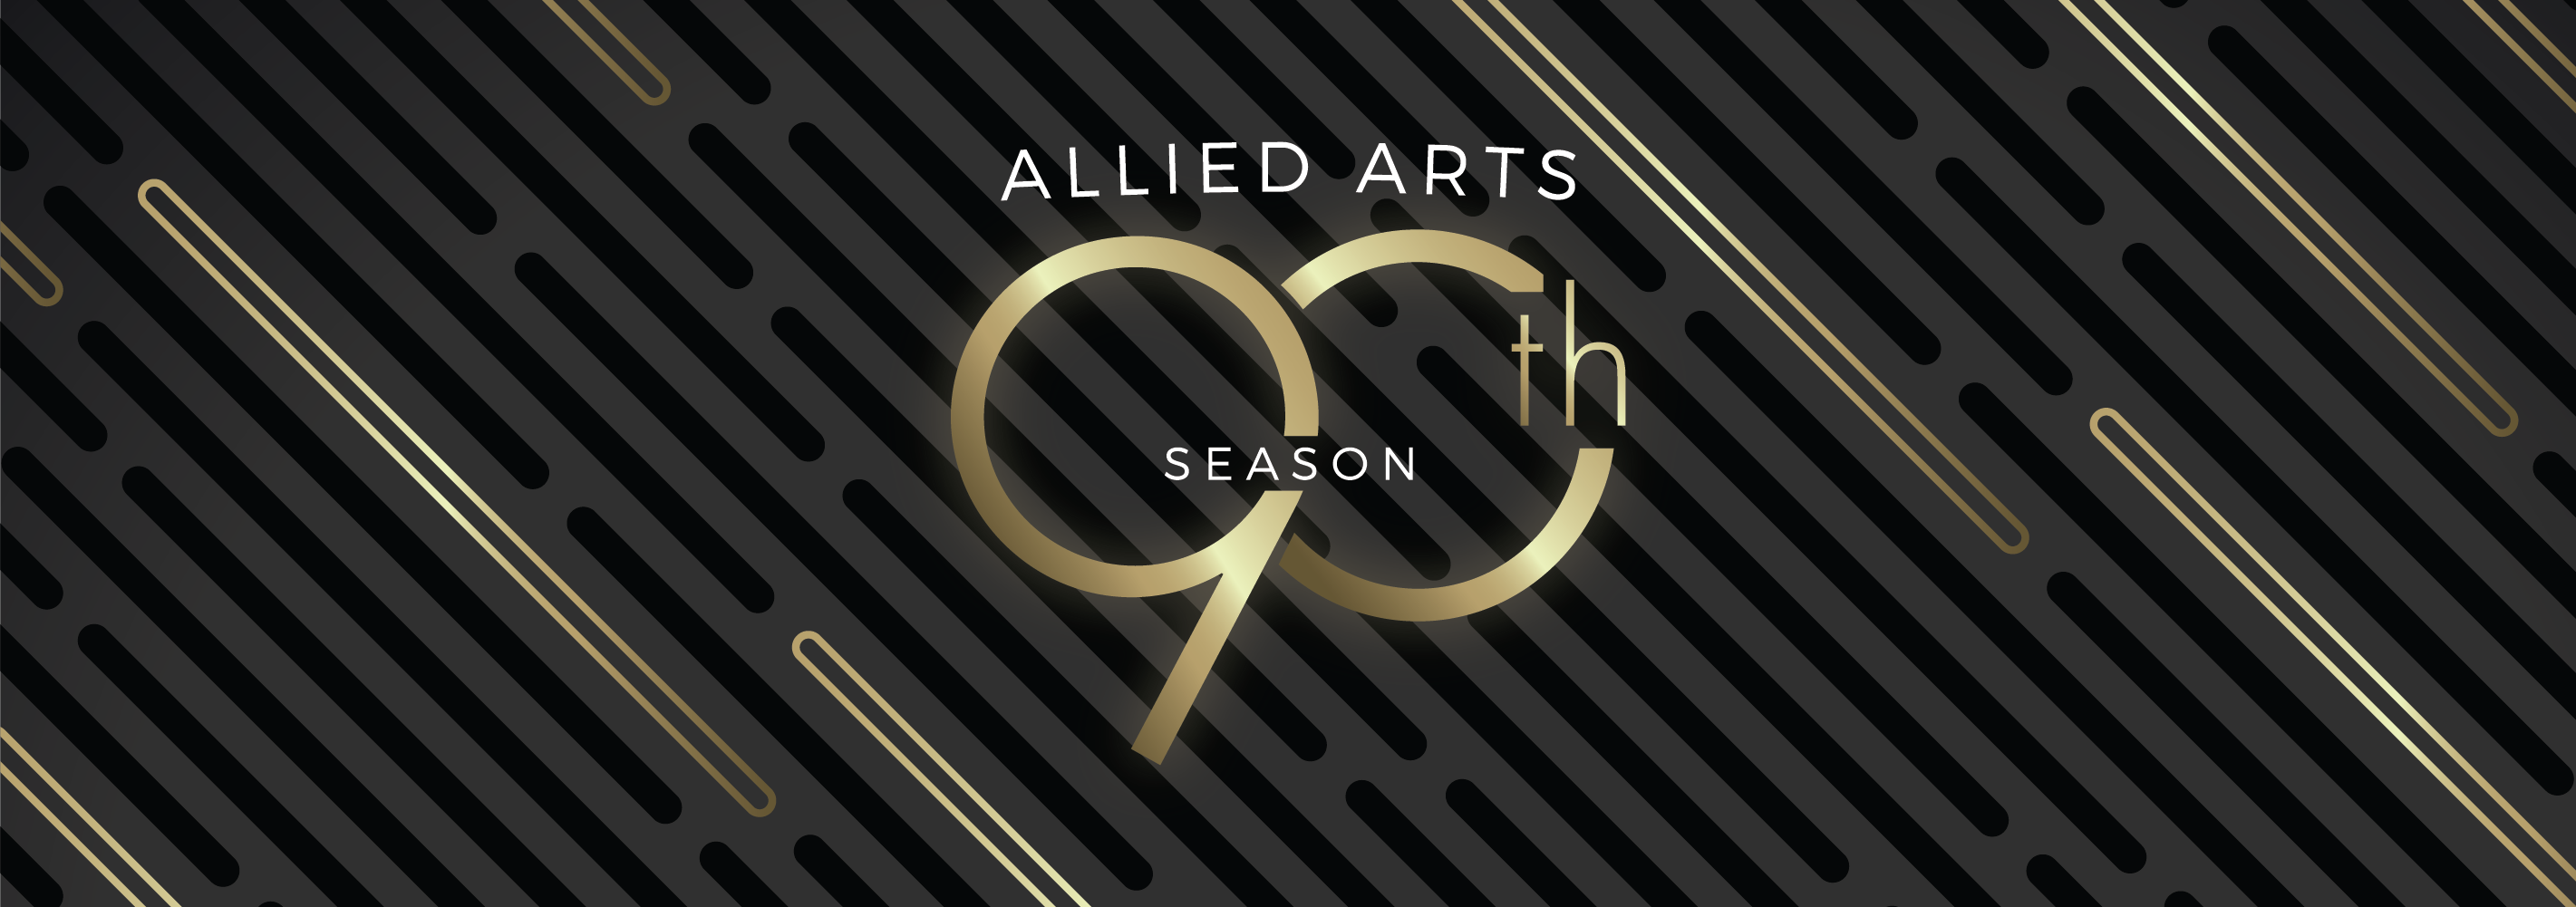 Allied Arts to host its 90th season.